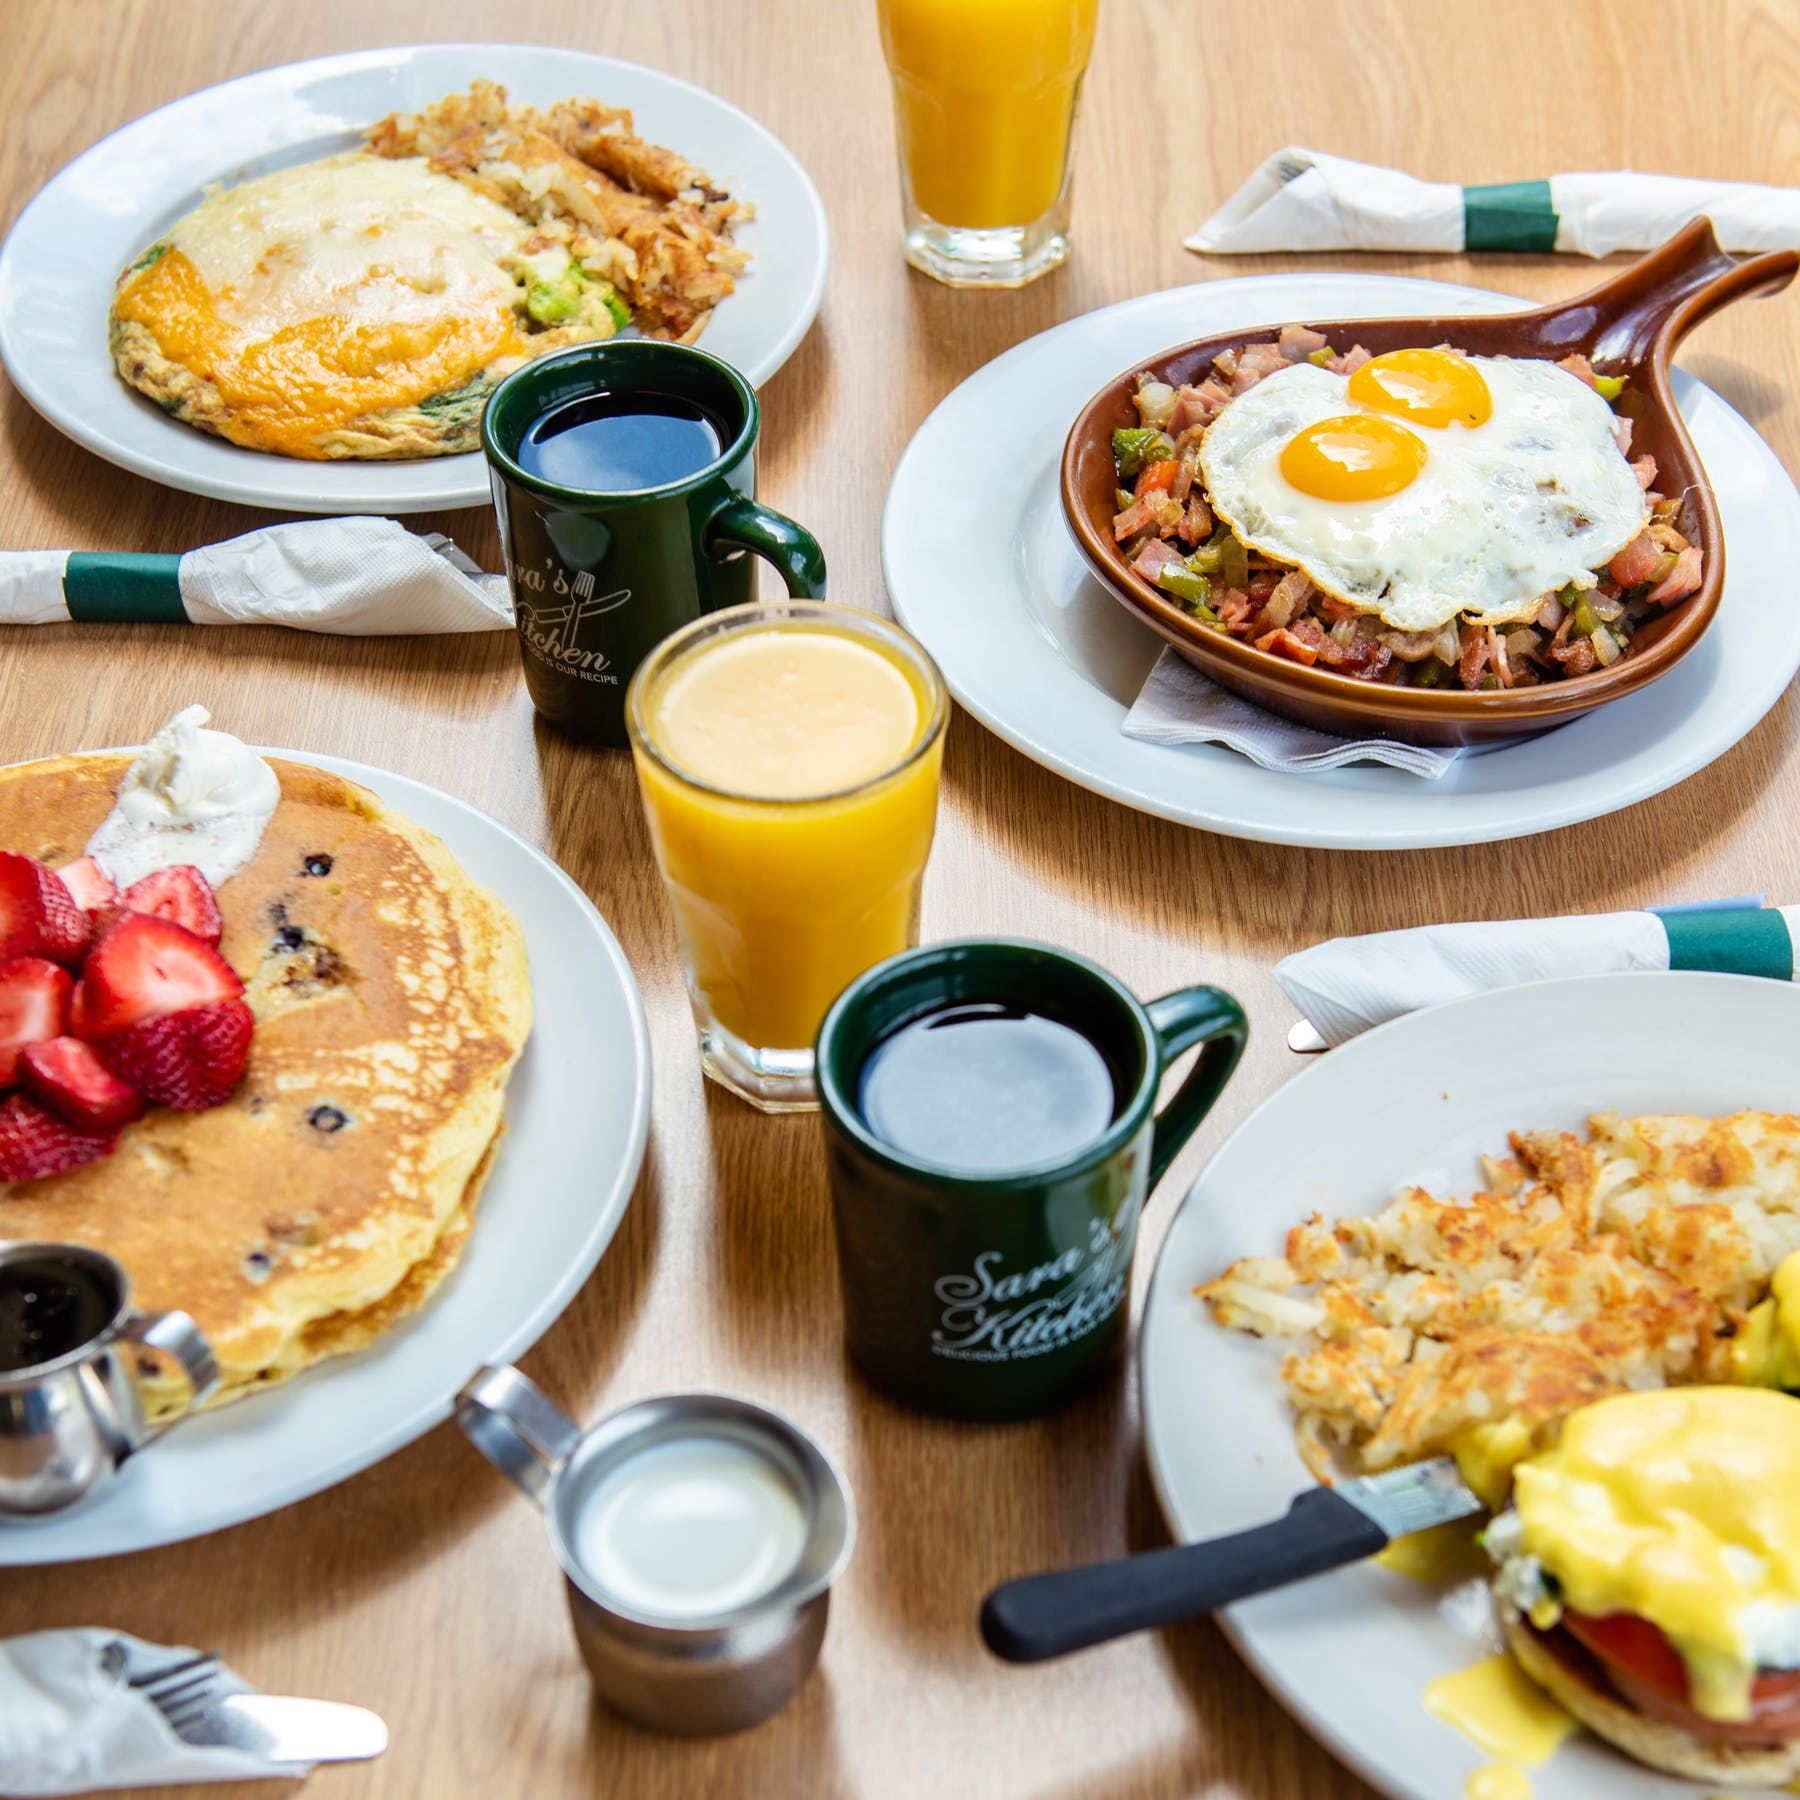 a plate of breakfast food is sitting on a table